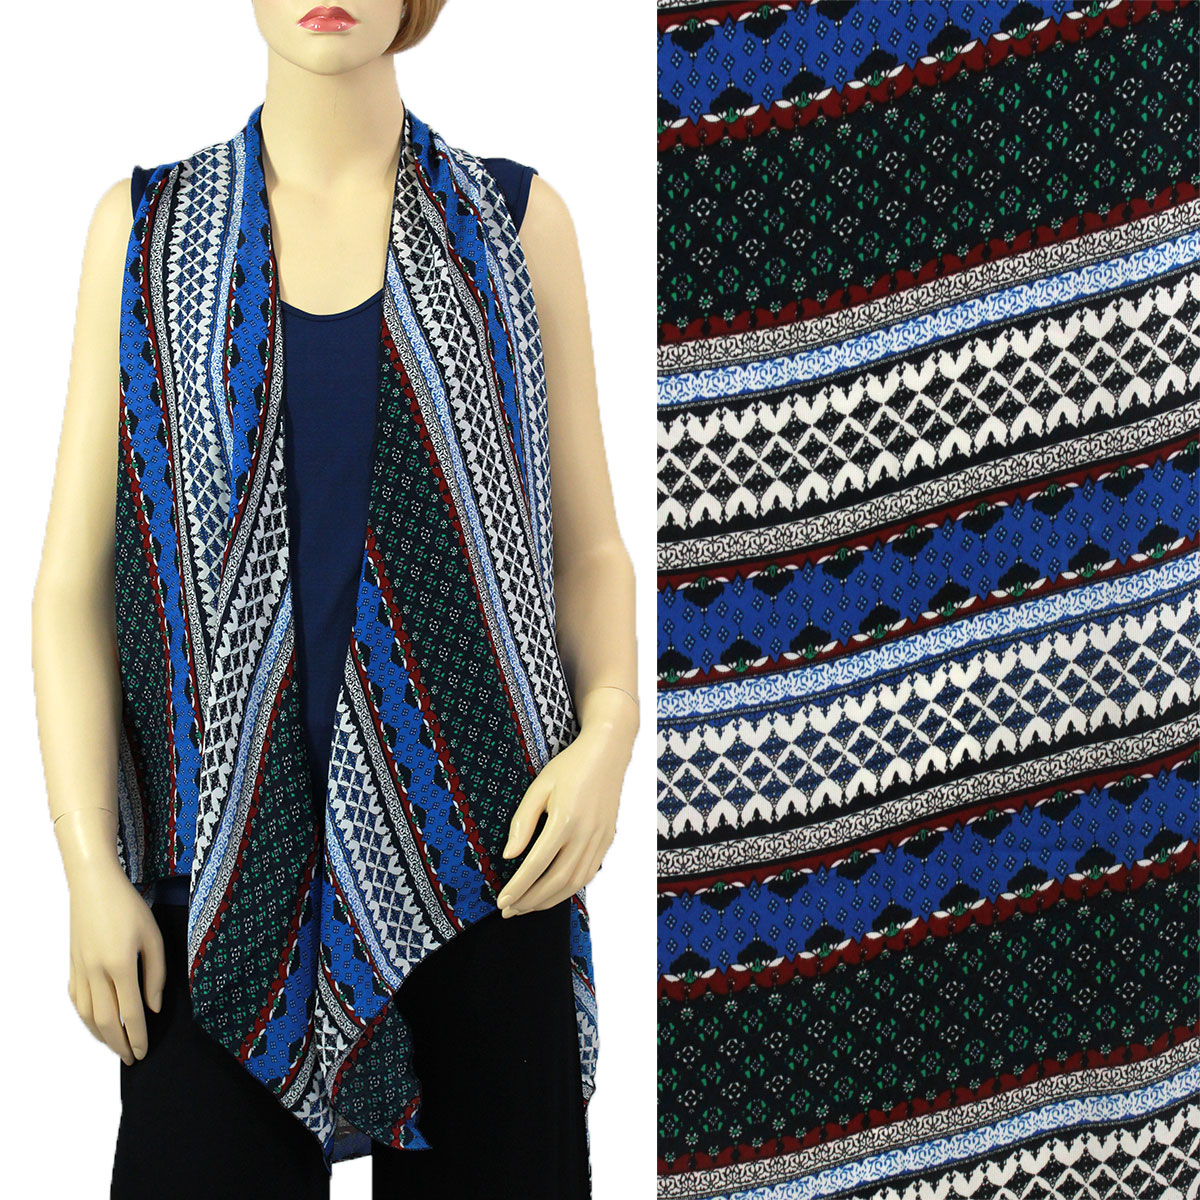 Chiffon Scarf Vests (Style 2) - #0536 Blue-Teal